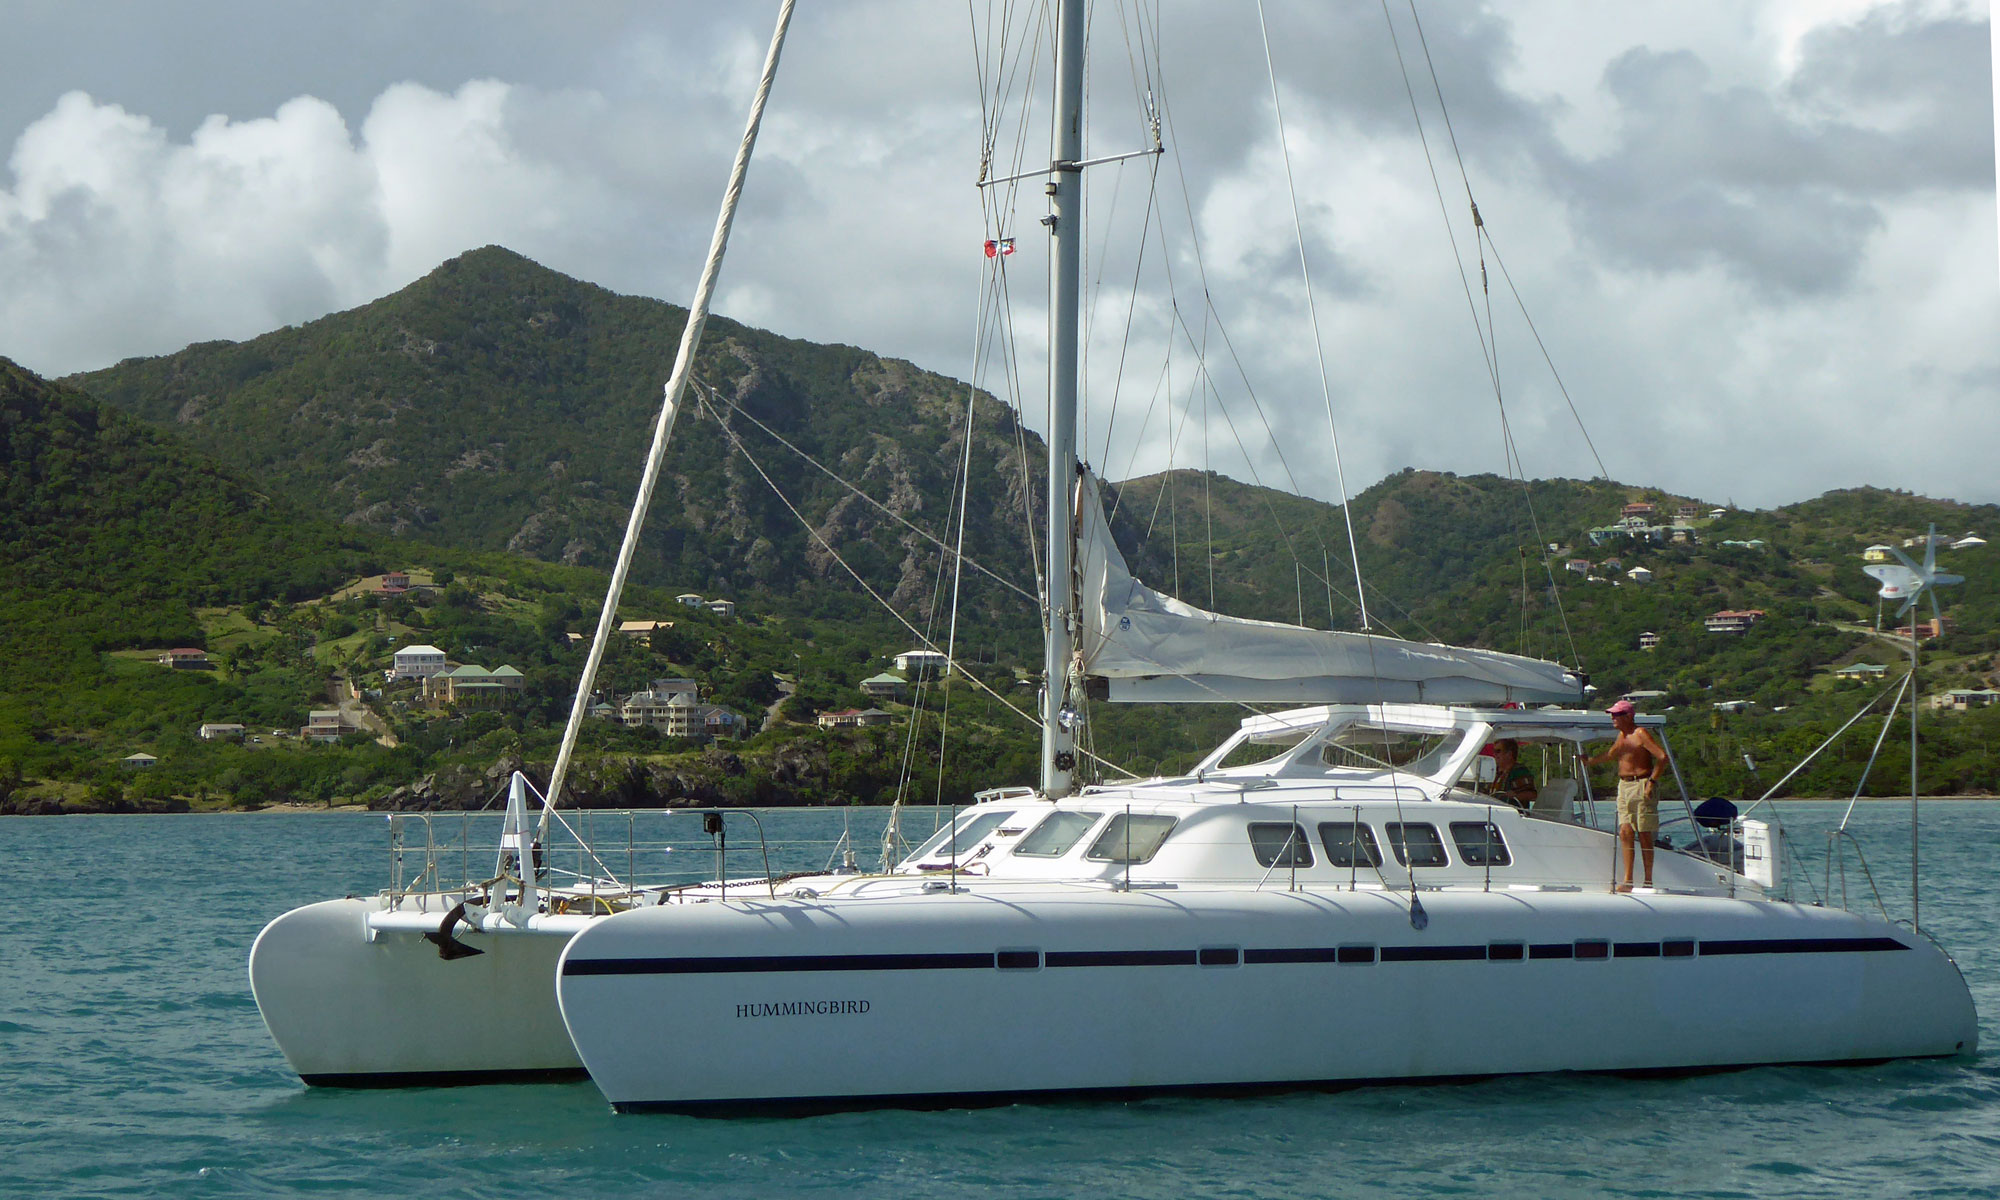 'Hummingbird', a Freebird 50 catamaran for sale